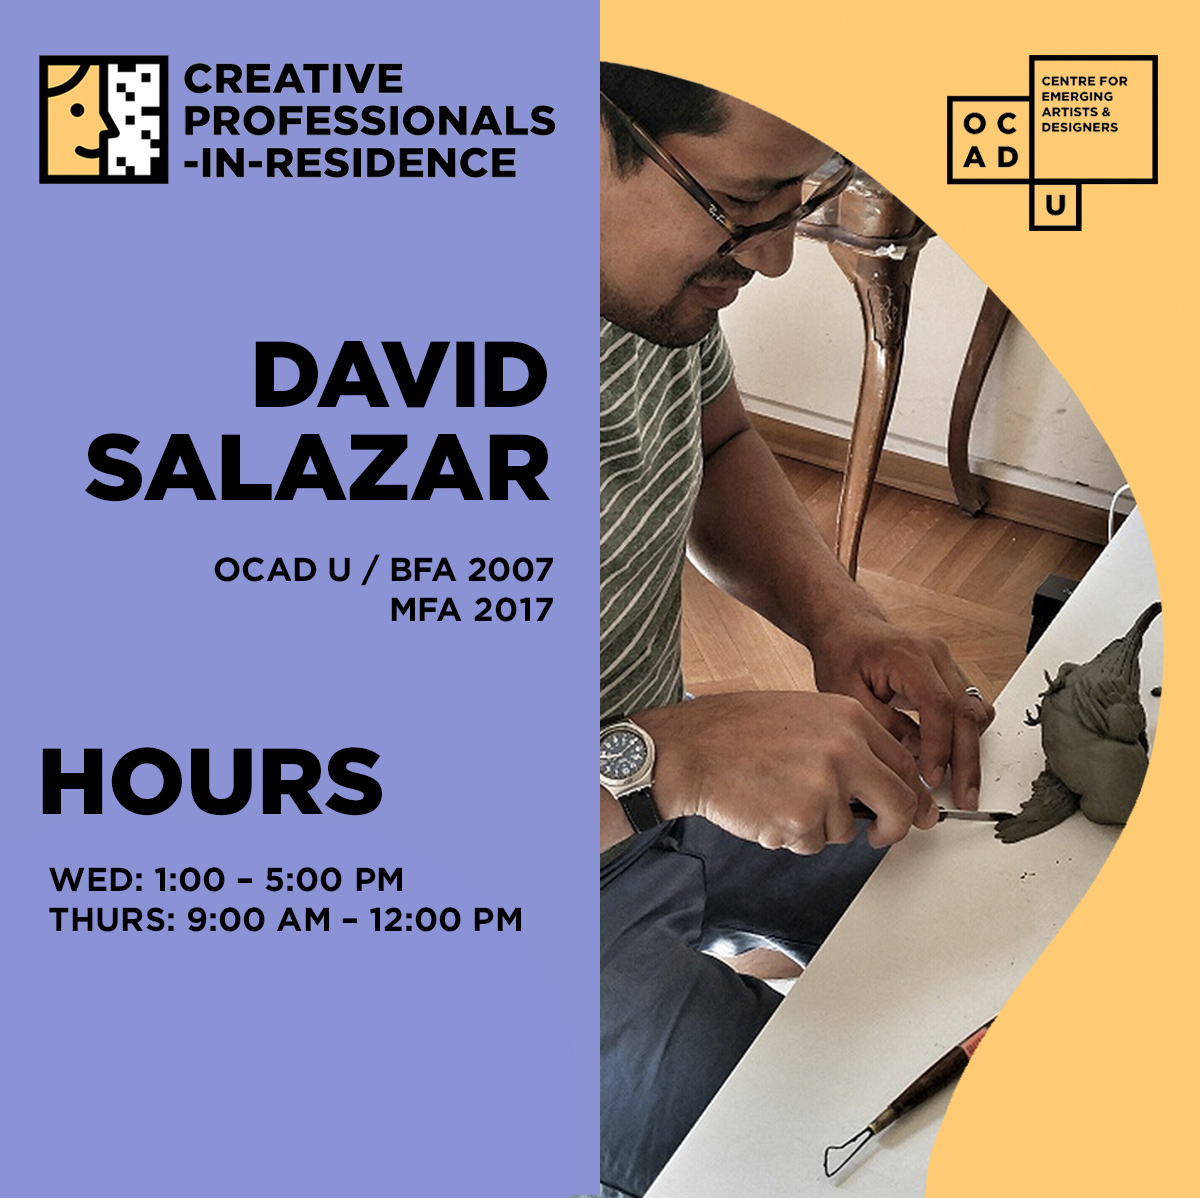 David Salazar | Creative Professional-in-Residence Artist | Hours